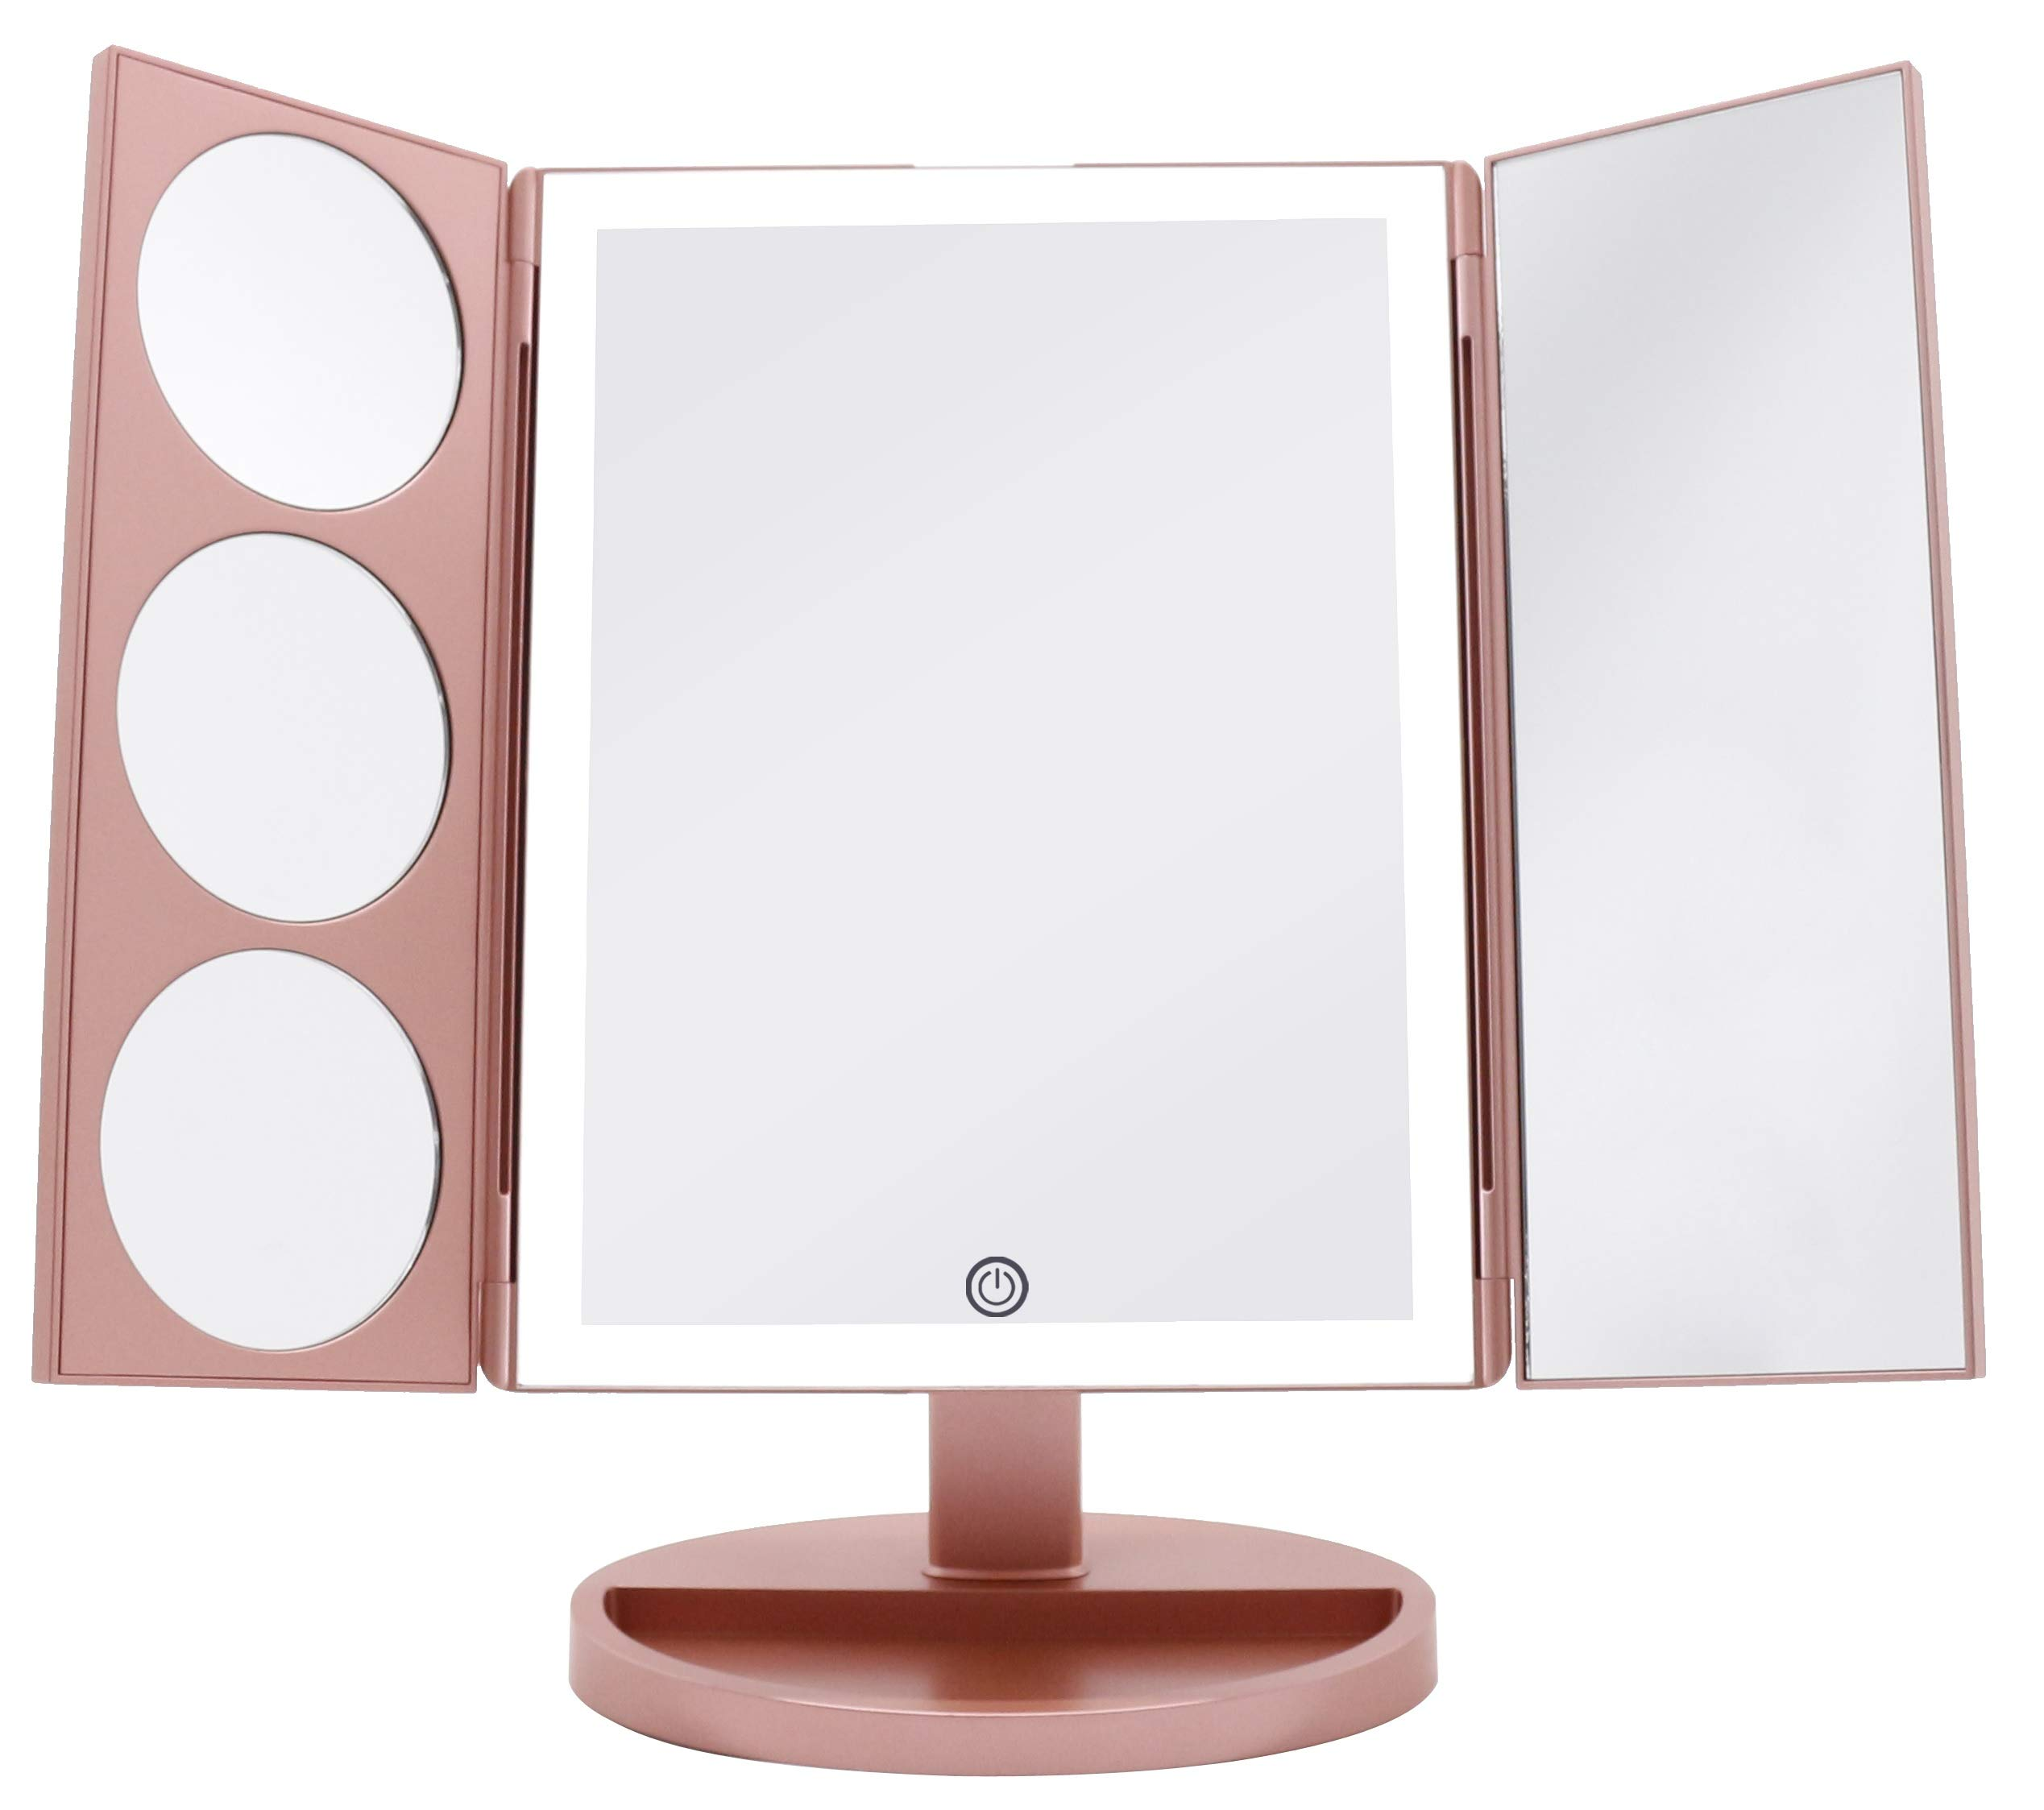 CDM product Milzie Makeup Vanity Mirror with 44 Natural White LED Lights, 3x 5x 10x Magnification Lighted Makeup Mirror, Extra Large Unique Tri-Fold Design, Countertop Cosmetic Mirror Rose Gold, X-Large Model big image